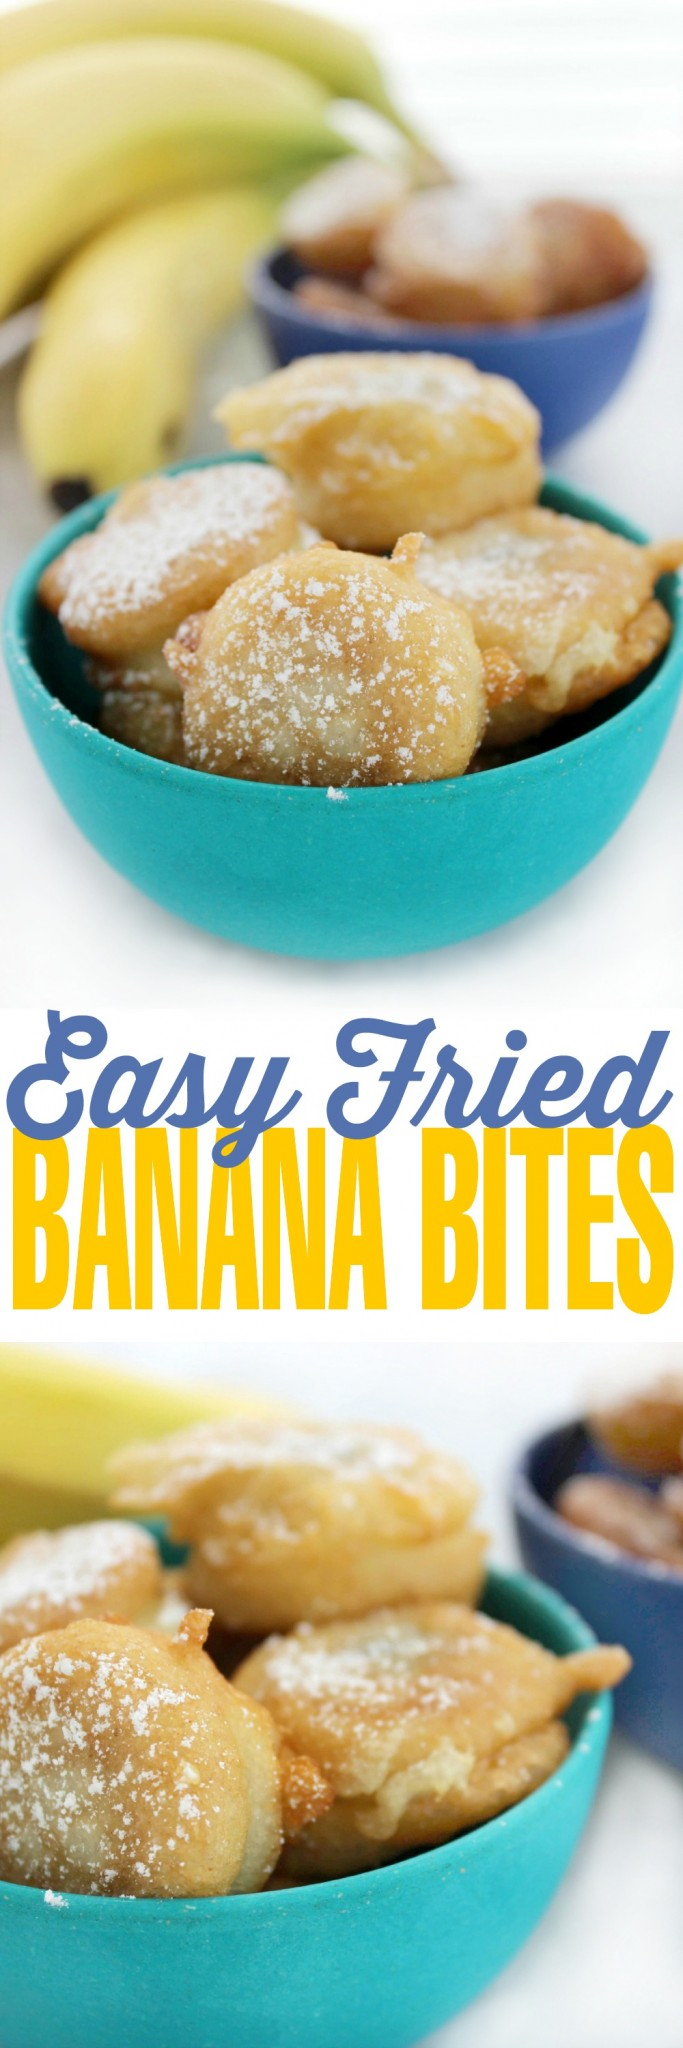 Easy Fried Banana Bites